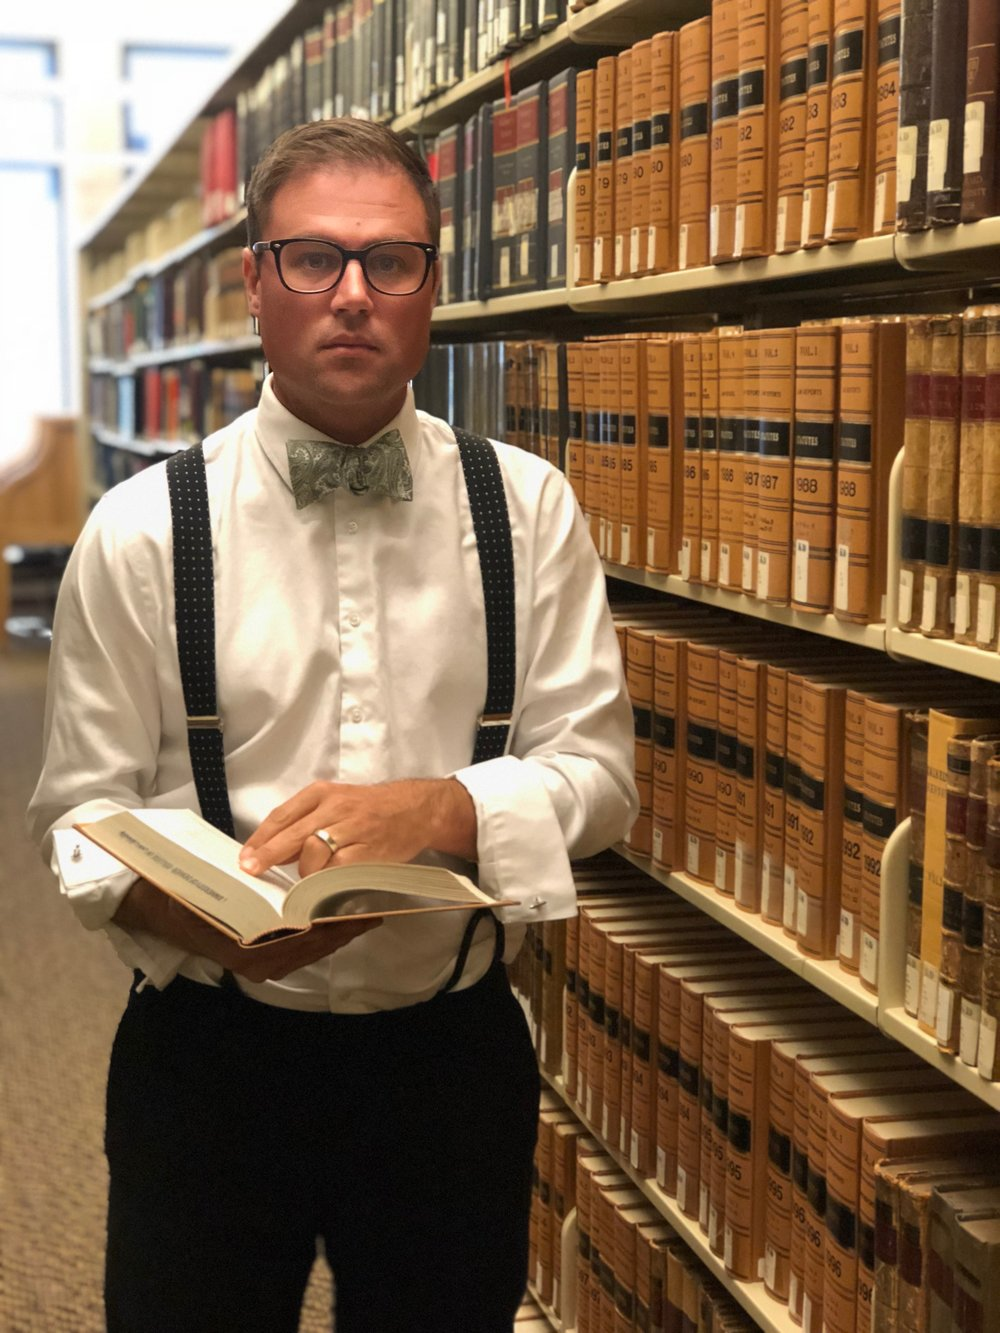 Weston William Bohall - Attorney of LawMasters of Taxation